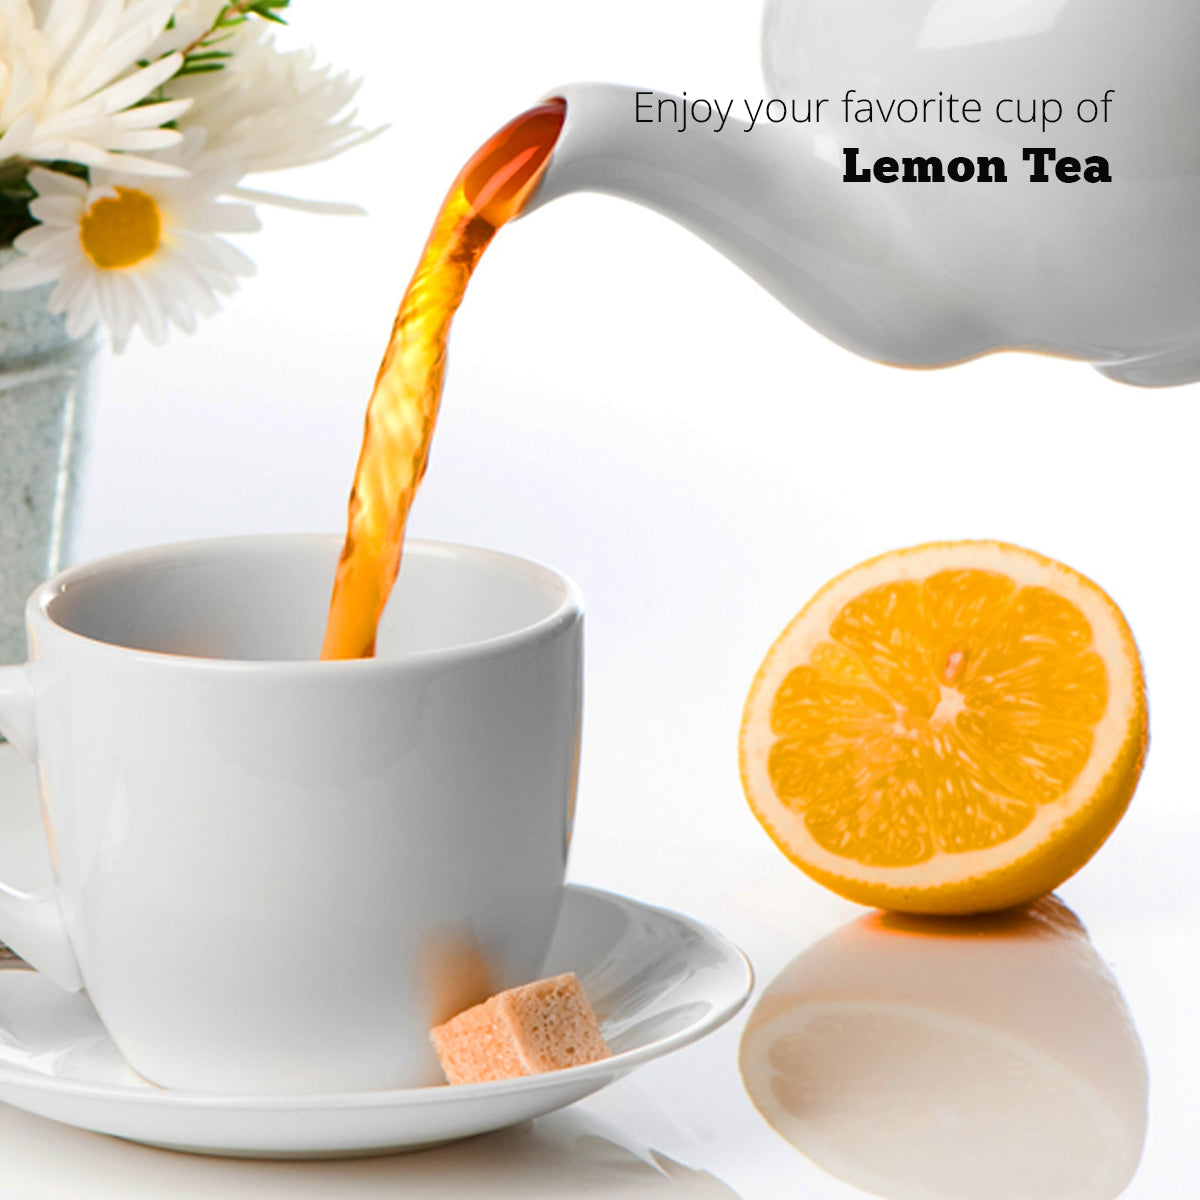 Lemon Tea Premix (1Kg) | Makes 100 Cups | 2 in 1 | Black Tea with Lemon | For Manual Use - Just add Hot Water | Suitable for all Vending Machines